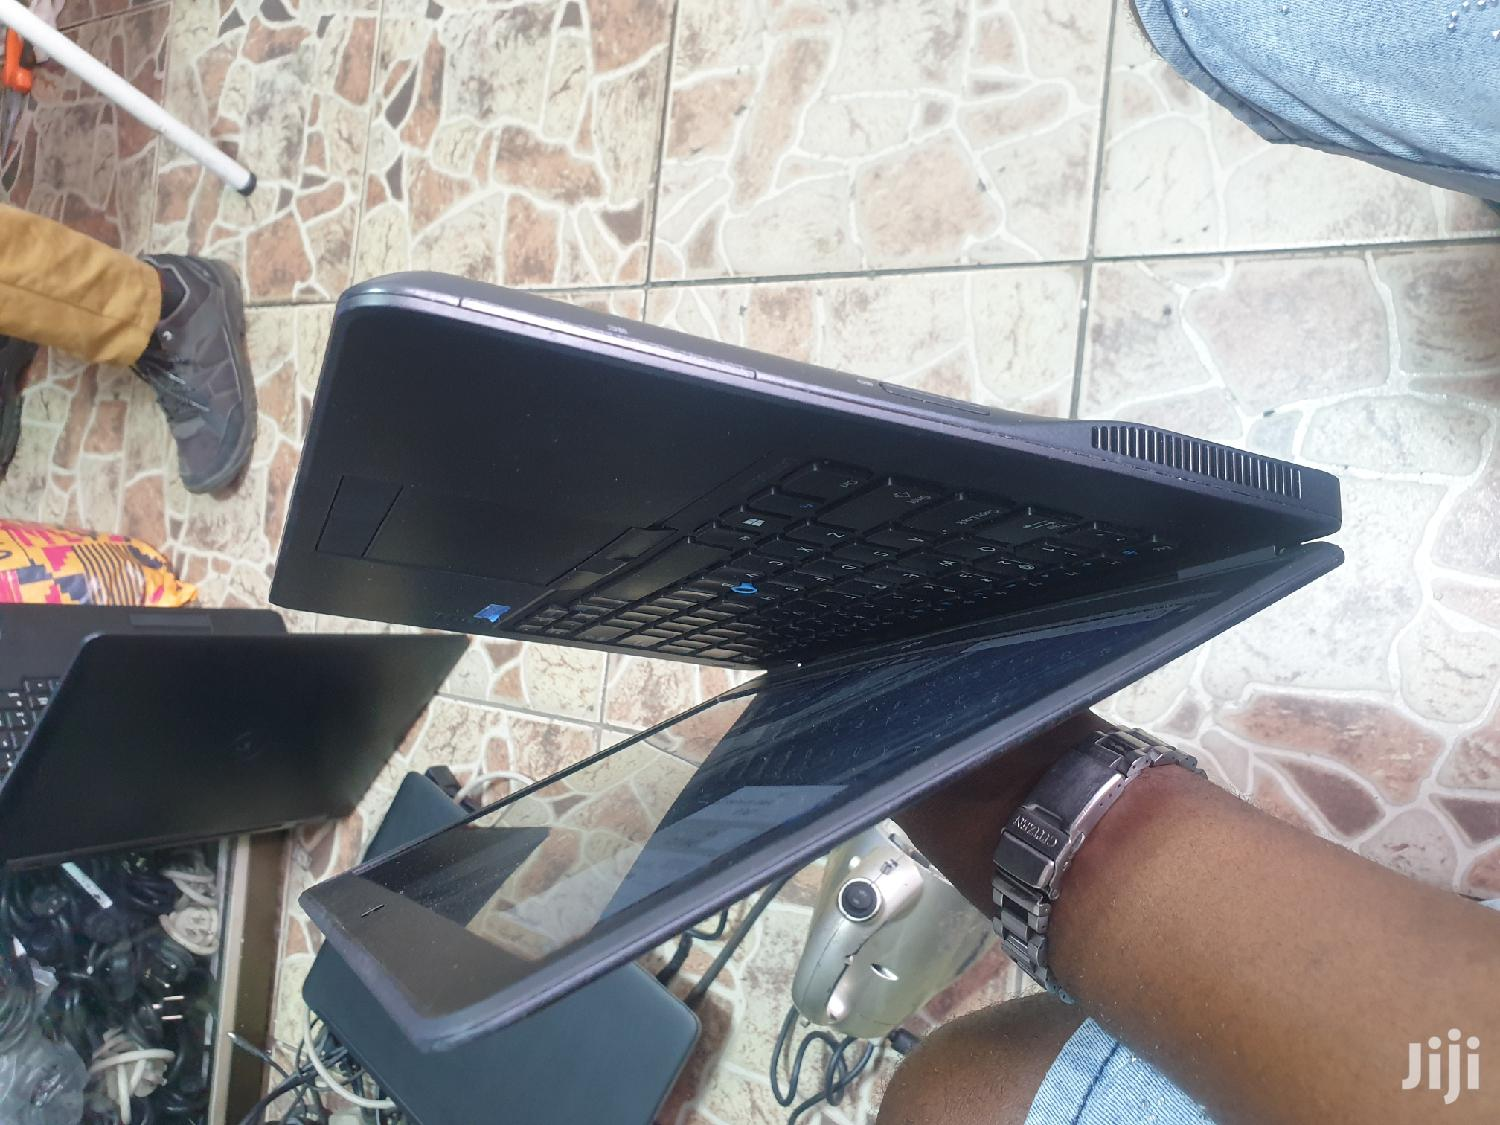 Laptop Dell Latitude E7450 4GB Intel Core I5 HDD 500GB | Laptops & Computers for sale in Dansoman, Greater Accra, Ghana